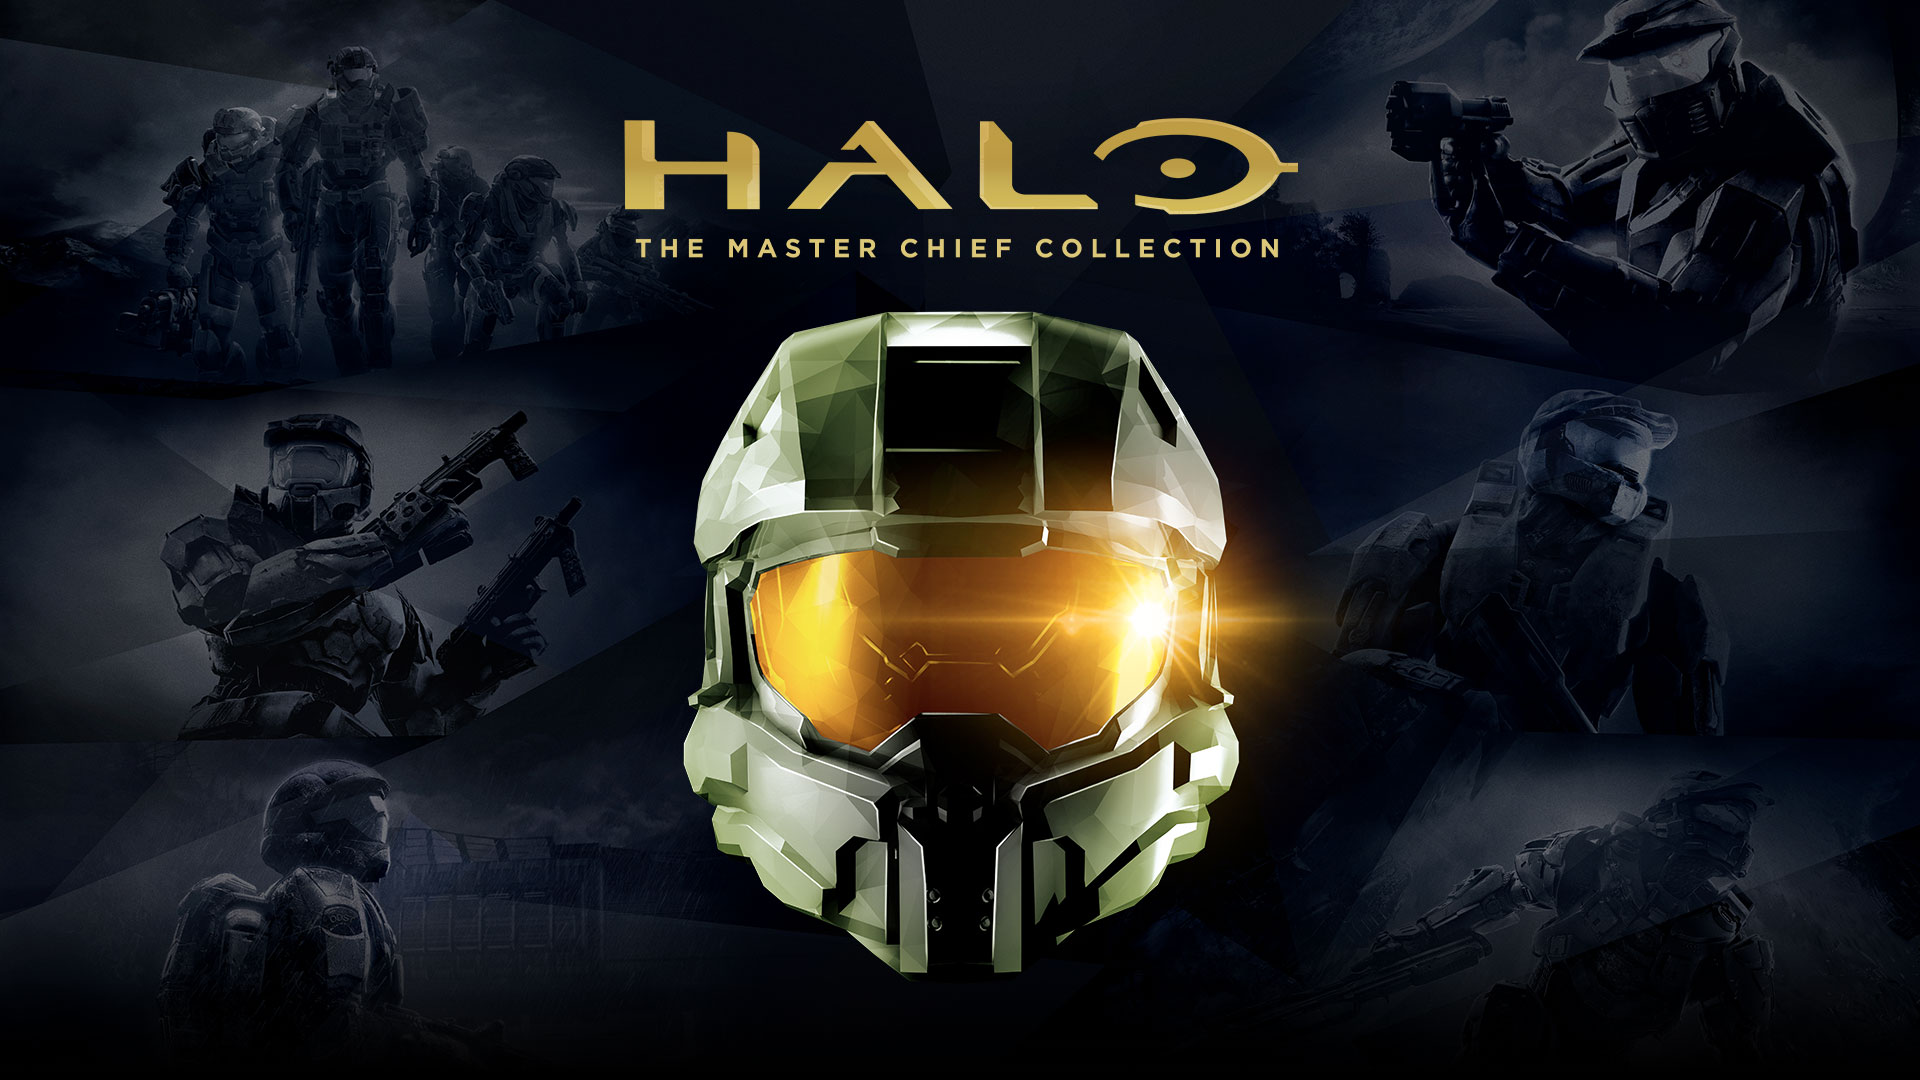 Halo The Master Chief Collection, Casque de Master Chief sur fond transparent de plans Halo en boîte